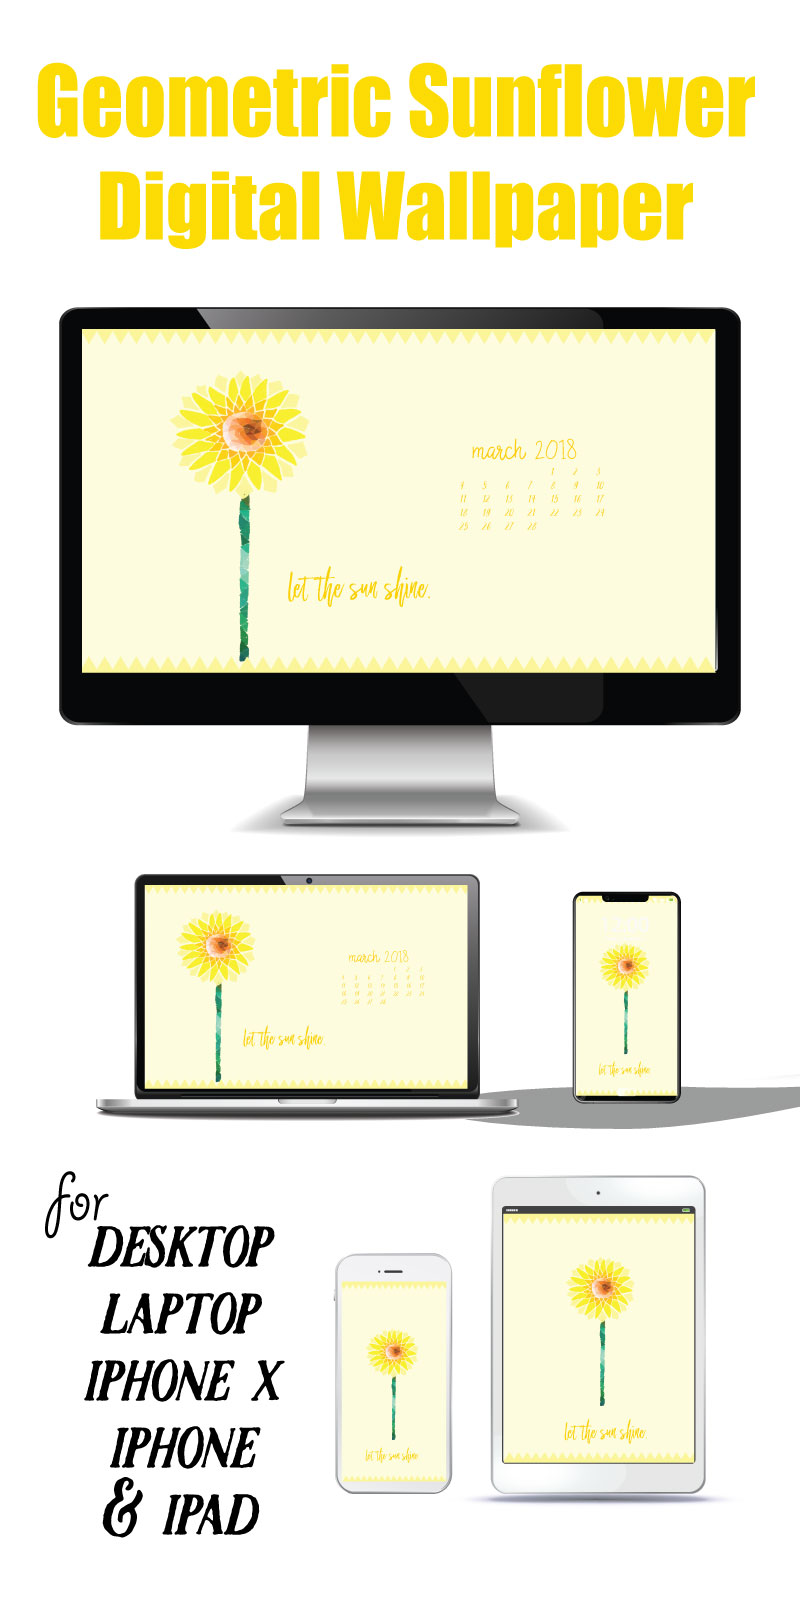 Download this bright and cheery Geometric Sunflower Digital Wallpaper! Make all your devices scream spring even before it ever gets here! #digitalwallpaper #sunflower #march #yellow #sun